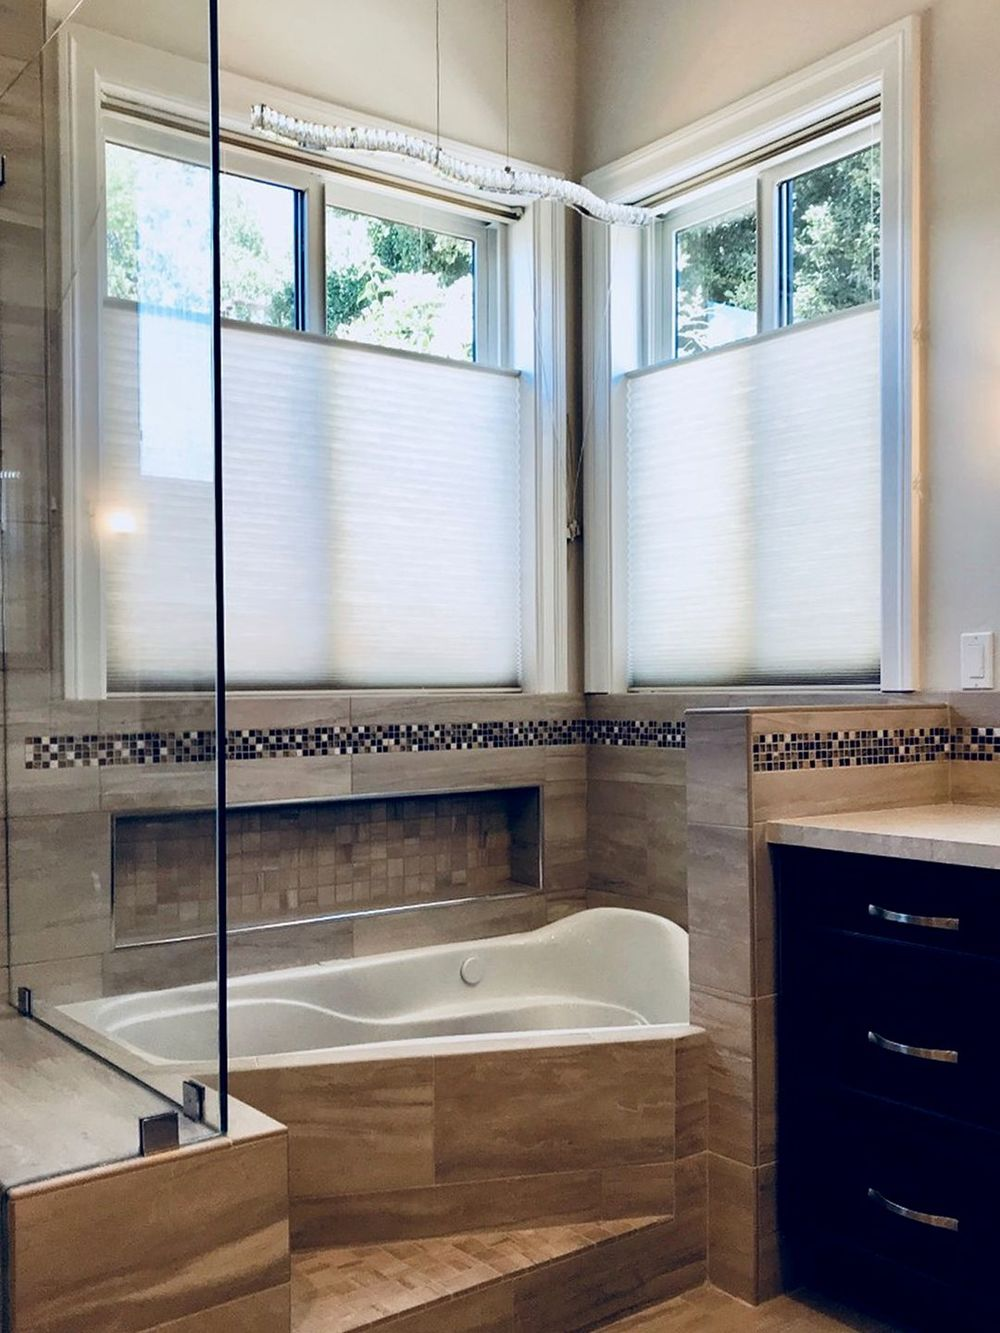 Master bathroom boasting a striking drop-in soaking tub and a walk-in shower room. The room feature windows with window shades as well.